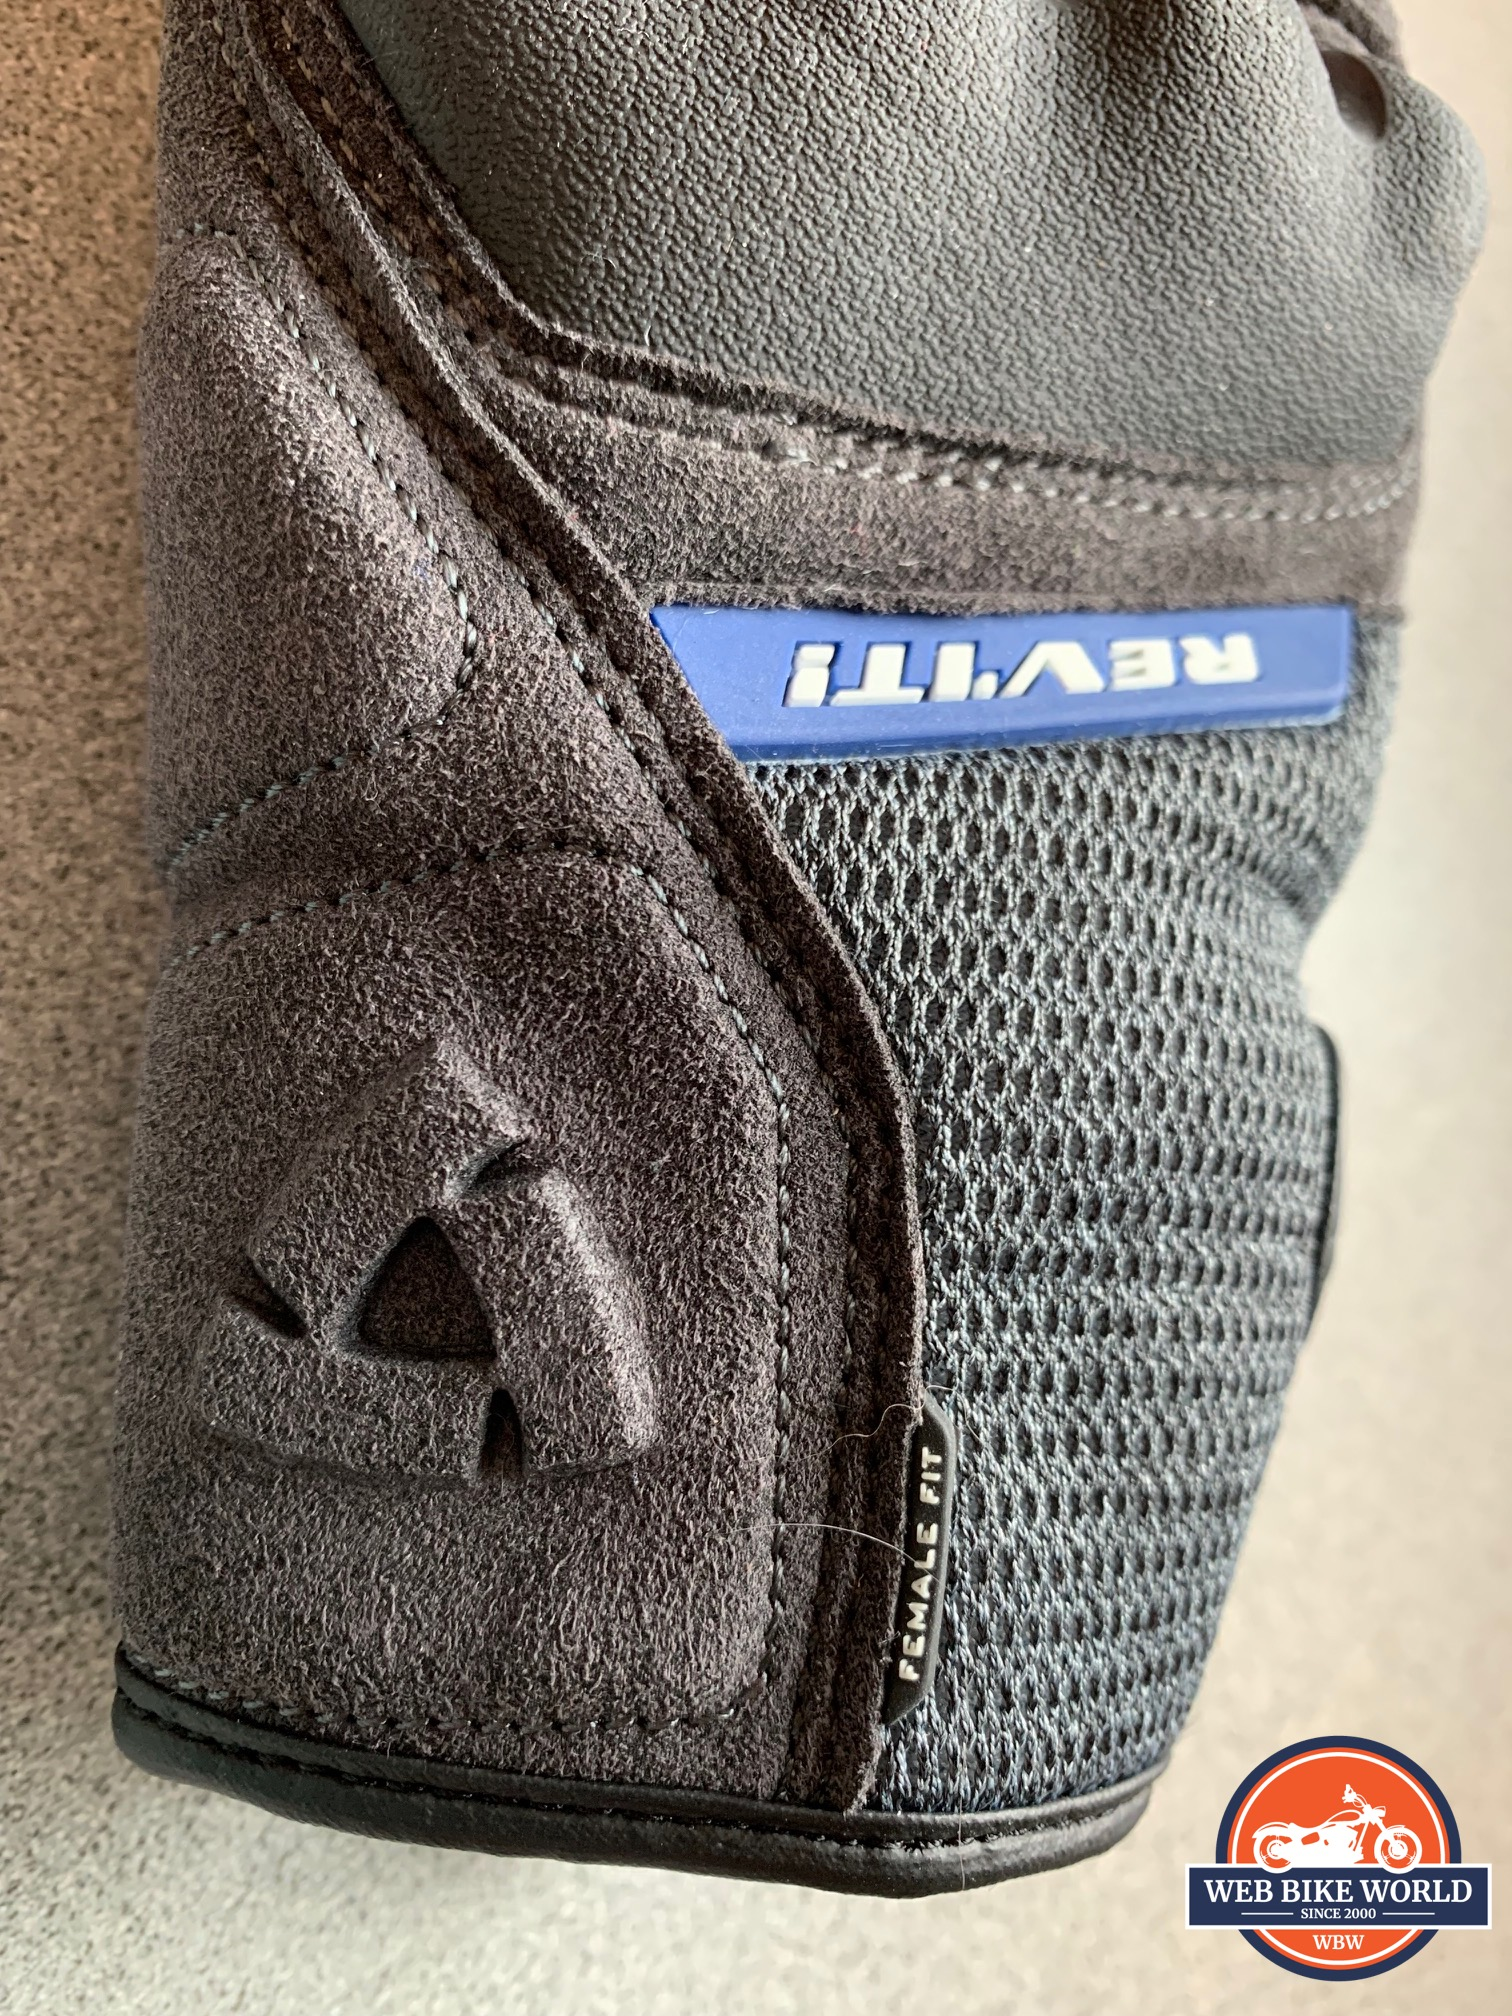 A view of the logo placement on the REV'IT! Volcano gloves